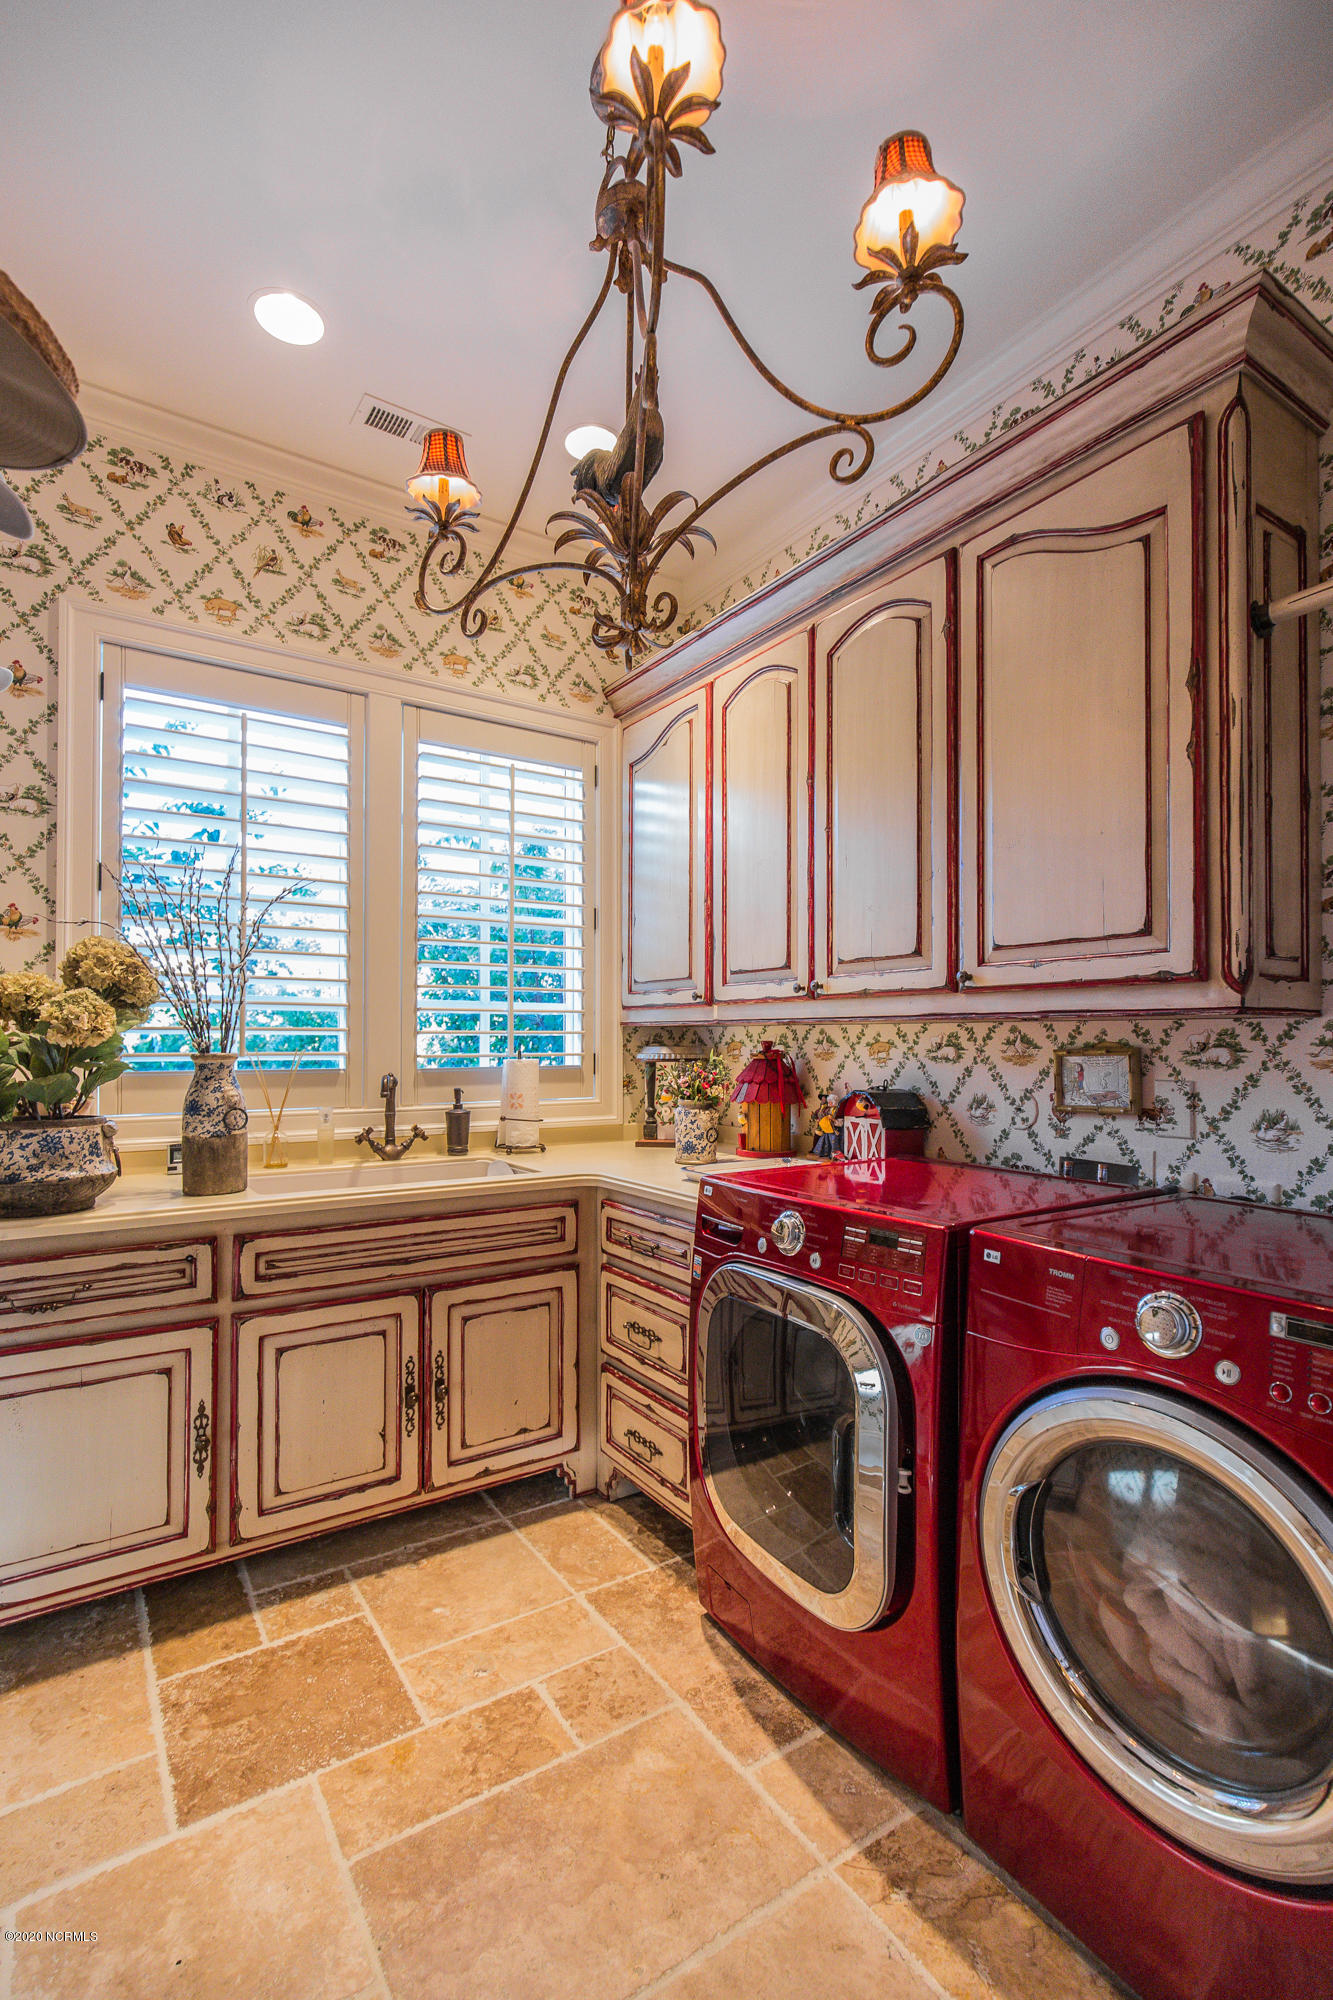 2305 Ocean Point Drive, Wilmington, North Carolina 28405, 5 Bedrooms Bedrooms, 14 Rooms Rooms,7 BathroomsBathrooms,Single family residence,For sale,Ocean Point,100206847